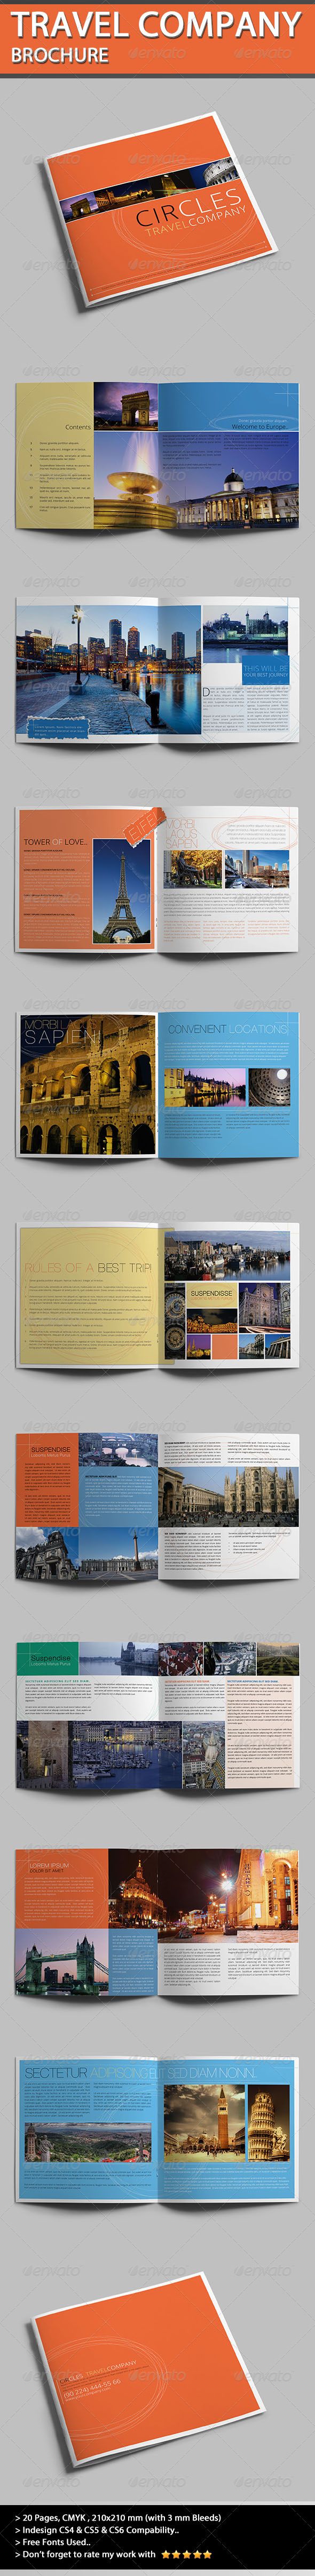 GraphicRiver Travel Company Brochure Circles 4491058